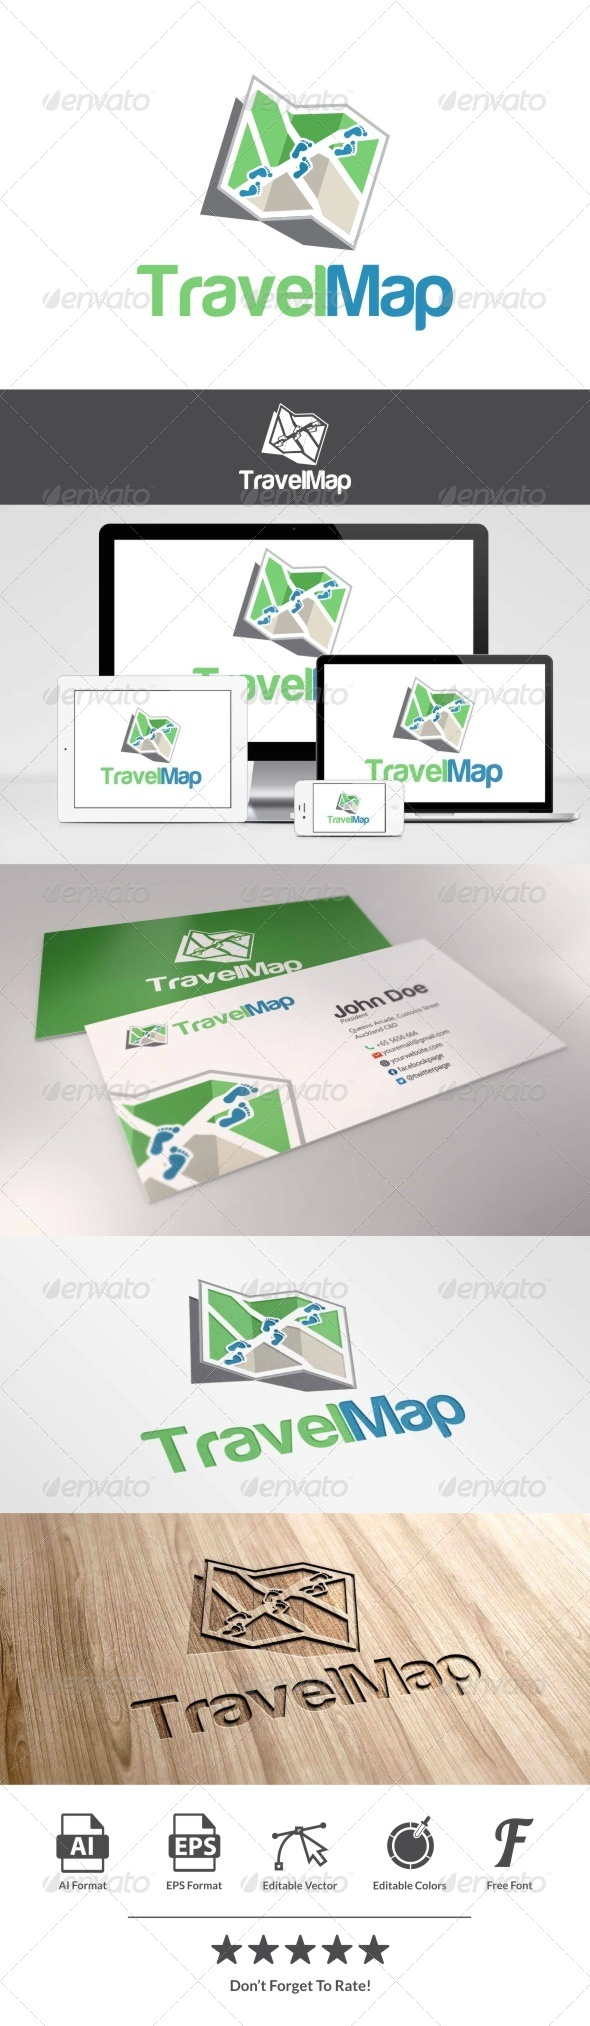 GraphicRiver Travel Map Logo 8054454